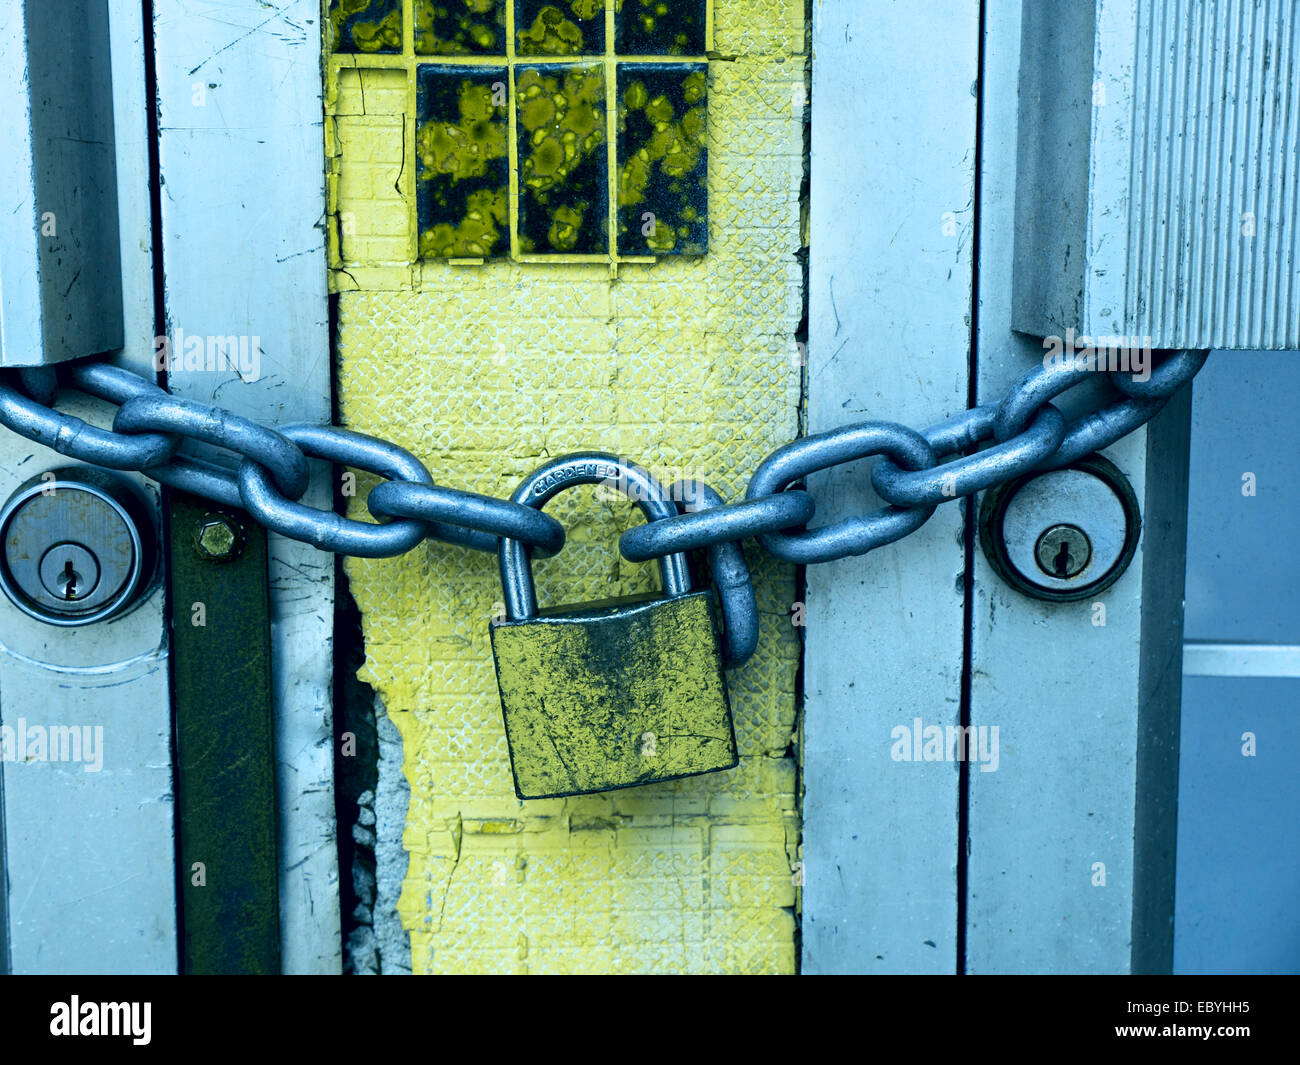 Lock and chain on a commercial buildings metal doors; filtered grunge look - Stock Image